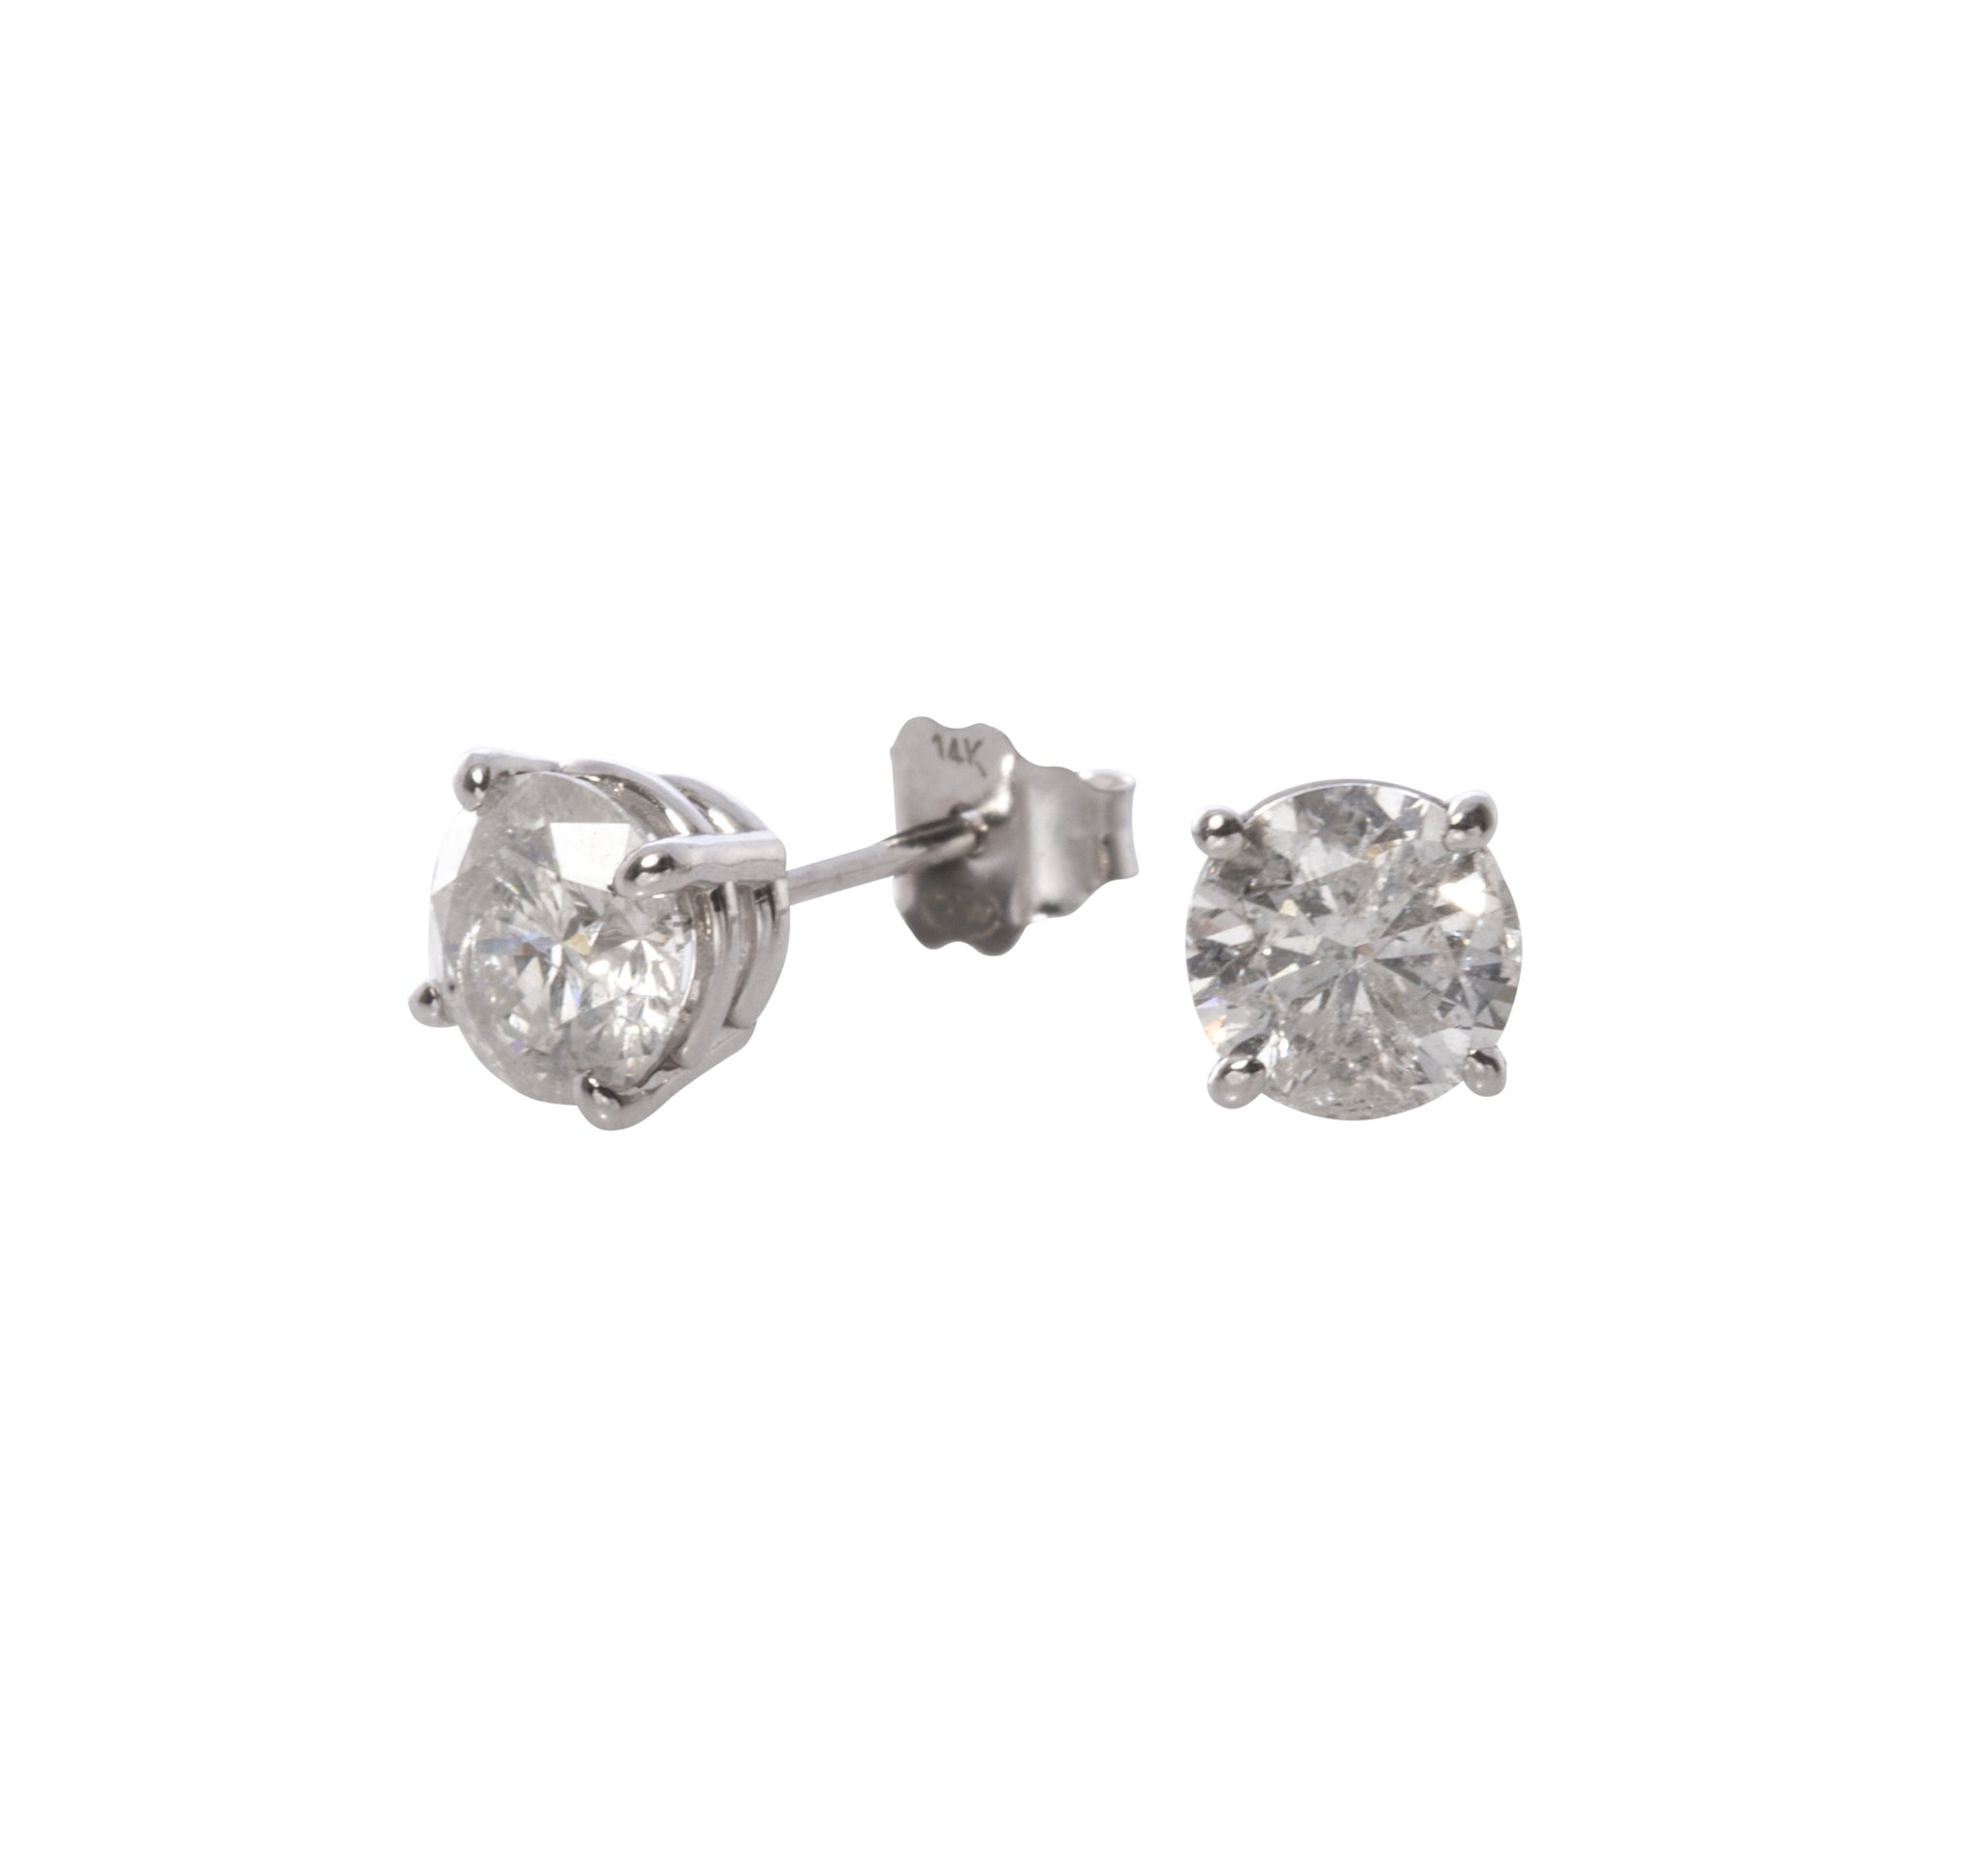 1.41ct Colorless Diamond 14K Gold Stud Earrings